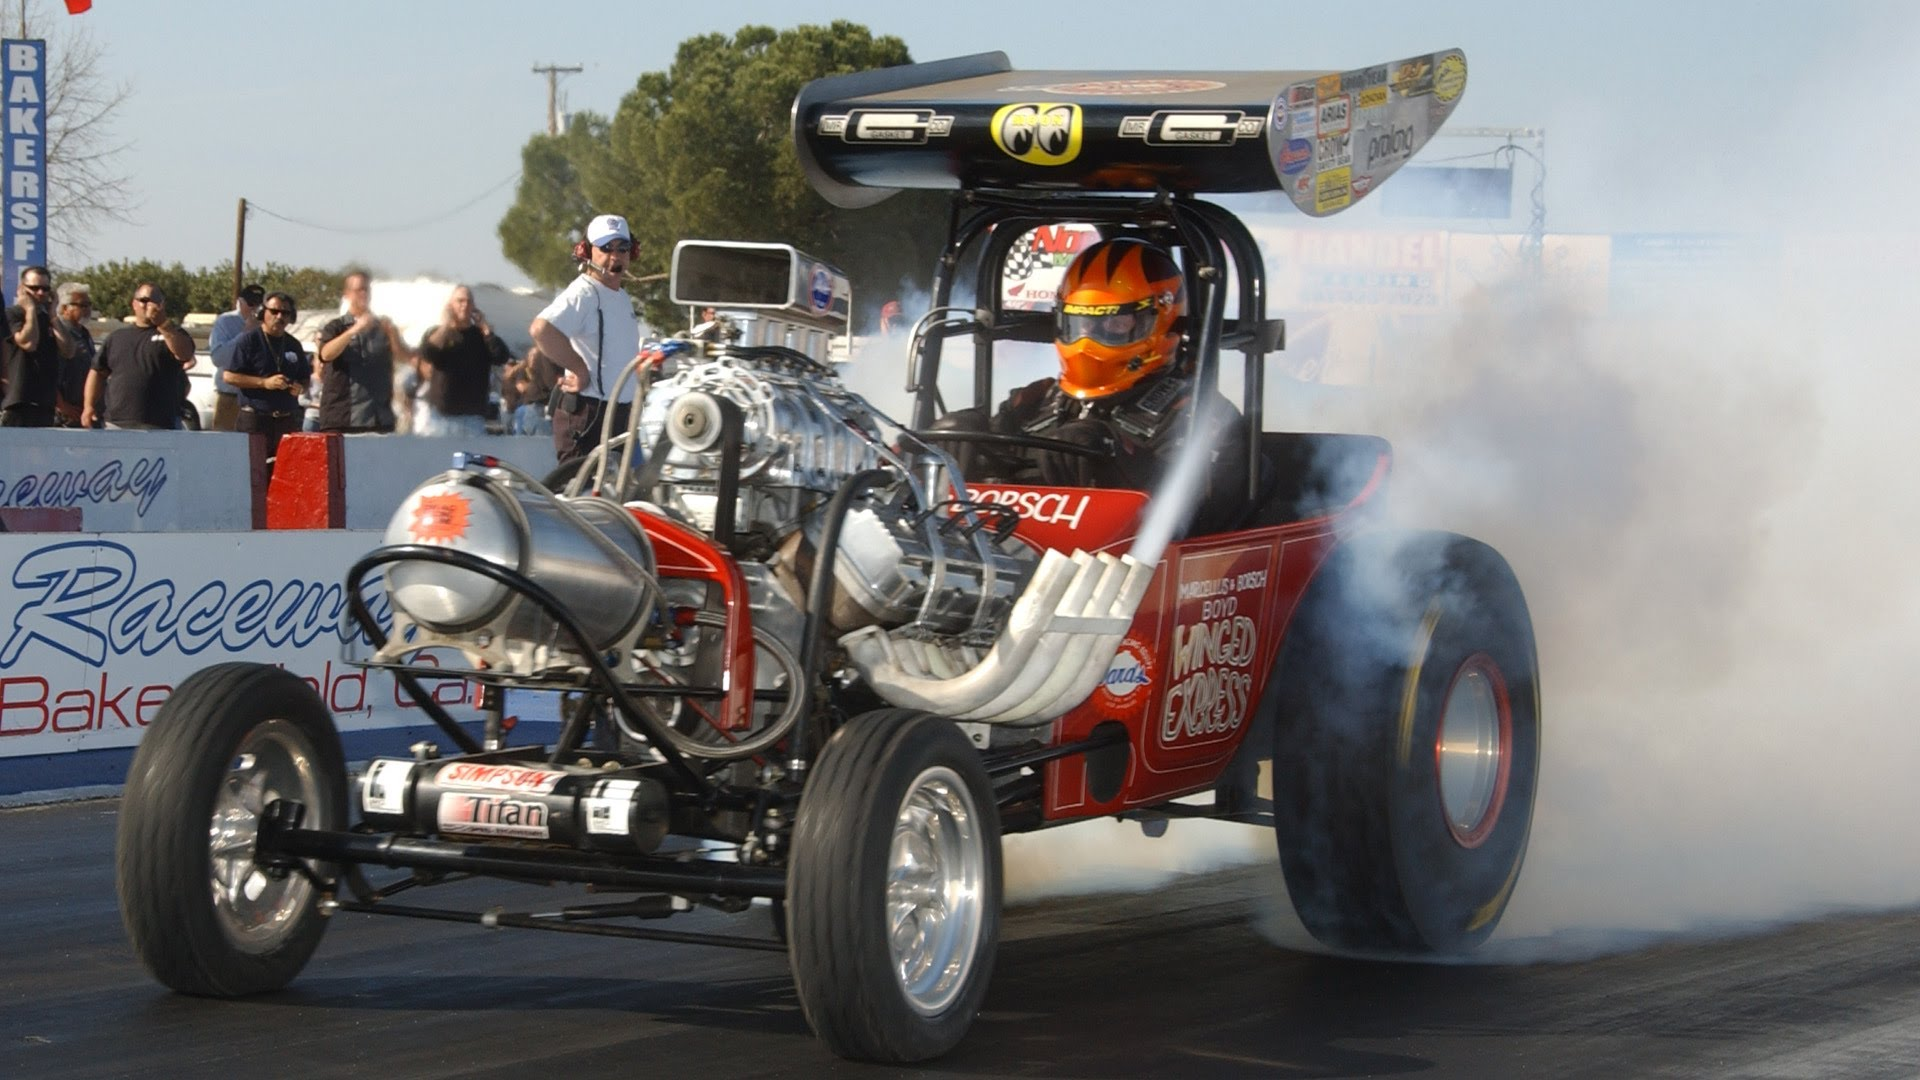 Aa Fuel Altered Drag Racing Race Hot Rod Rods Retro